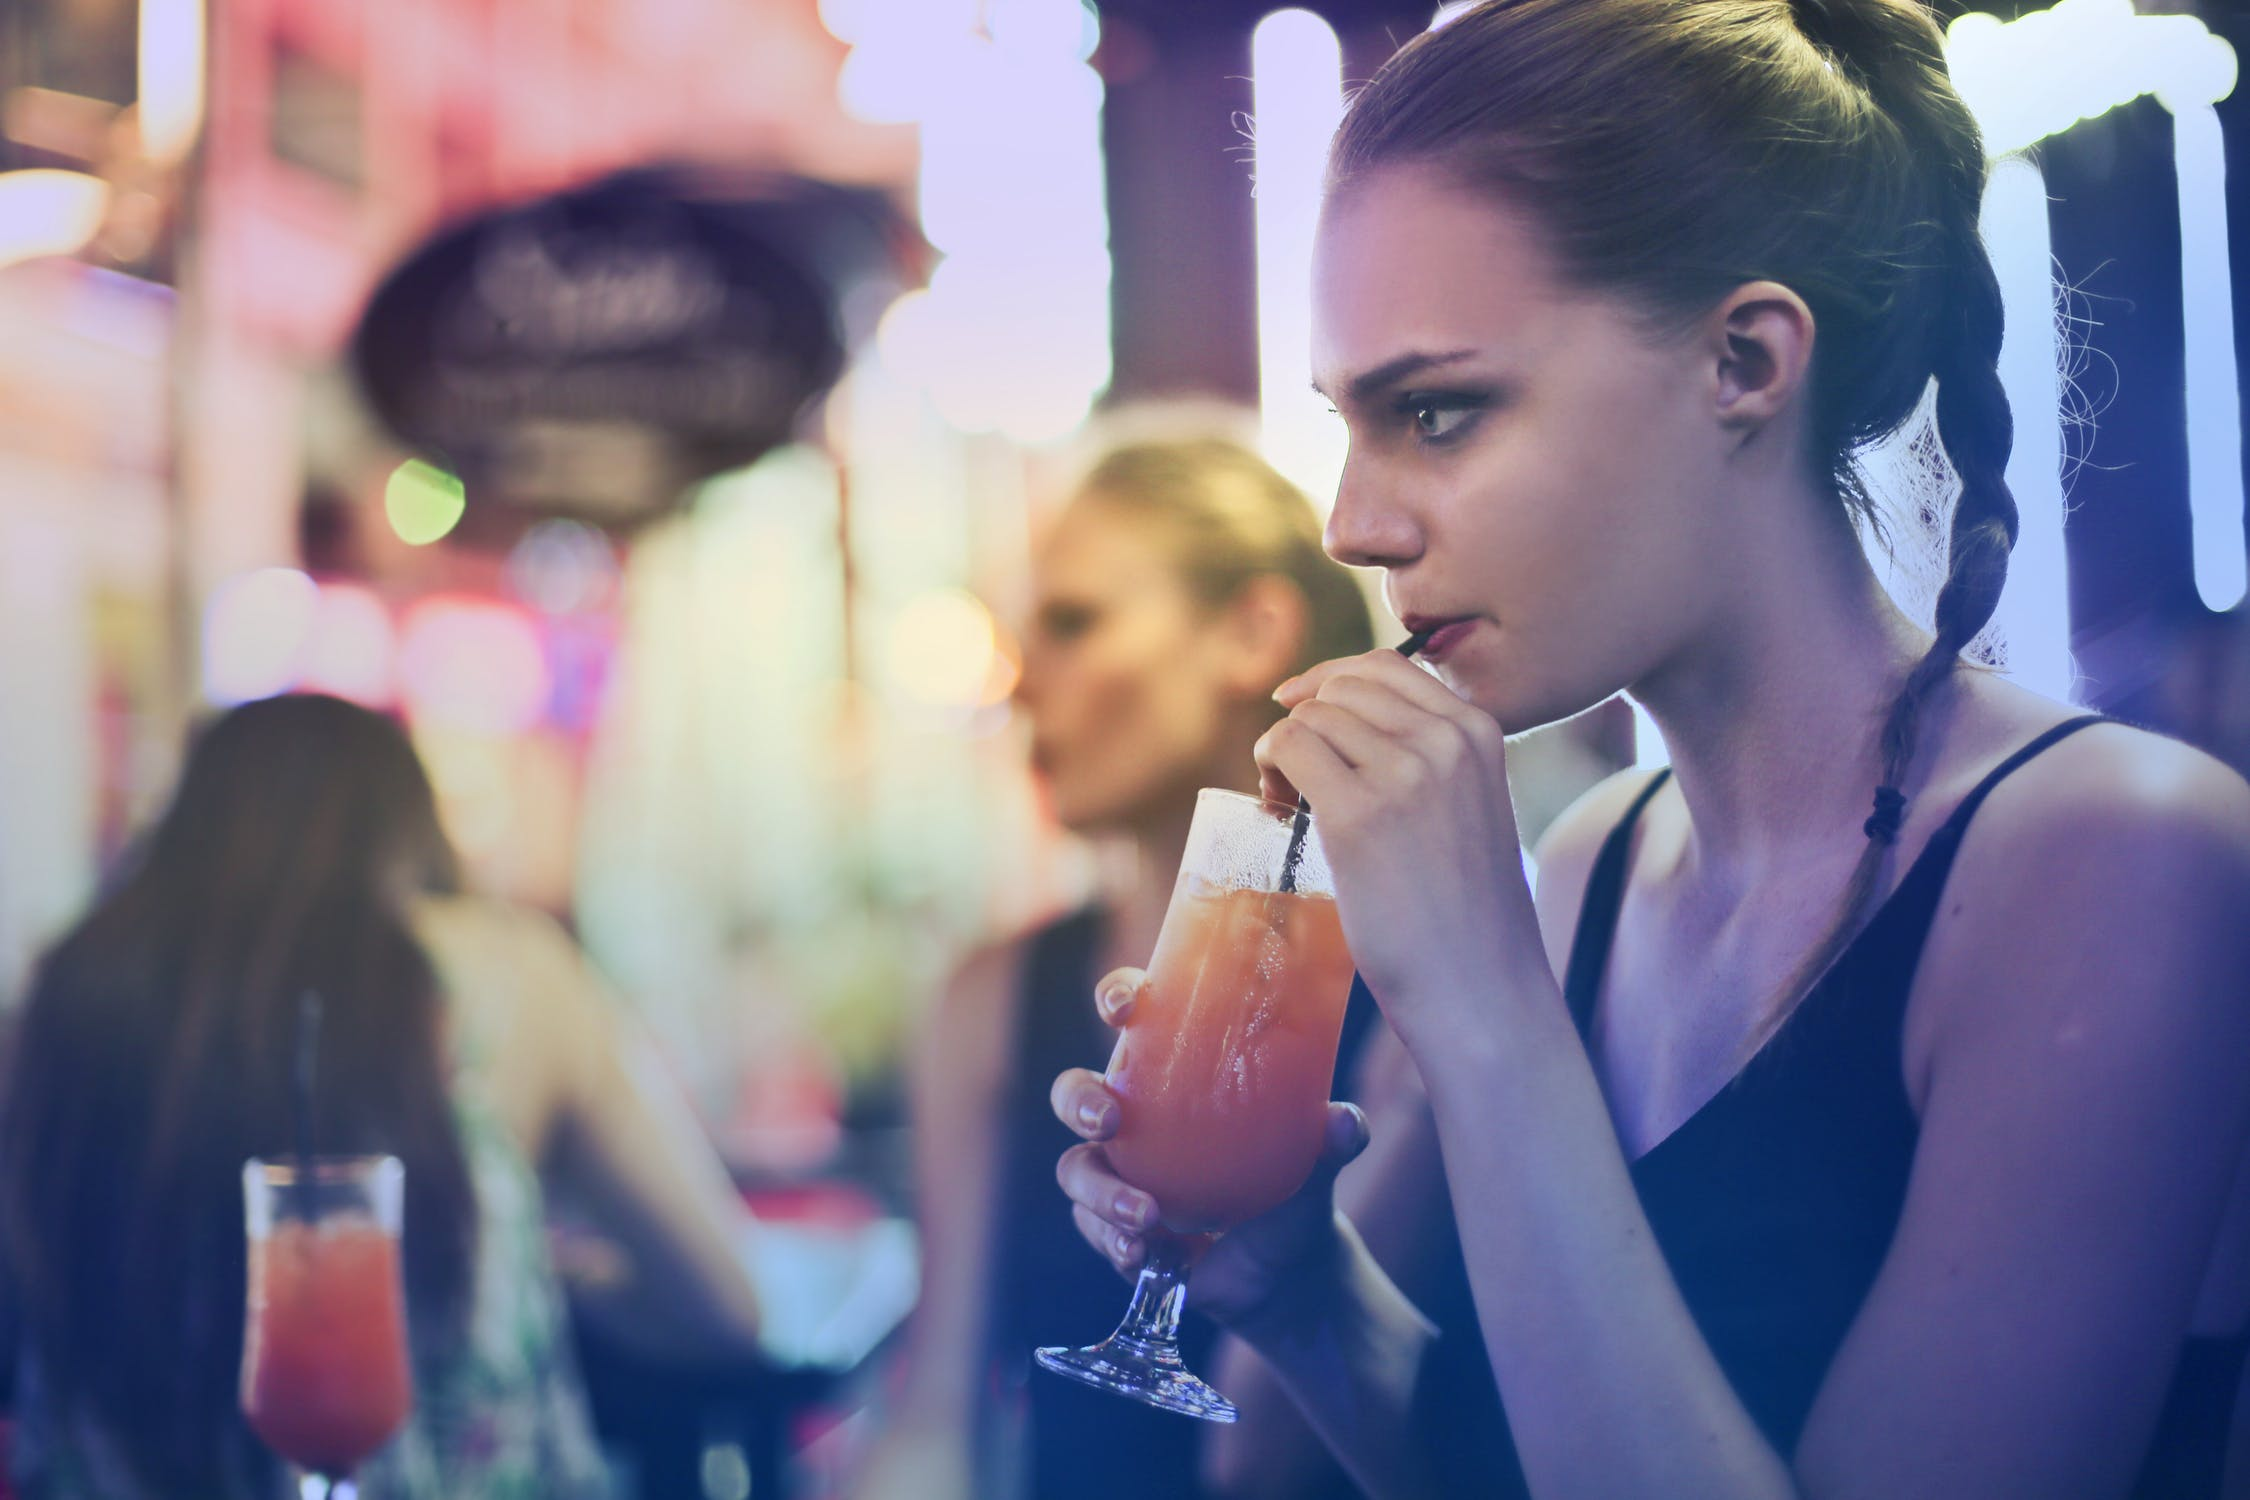 Health Risks Associated with Heavy Alcohol Drinking